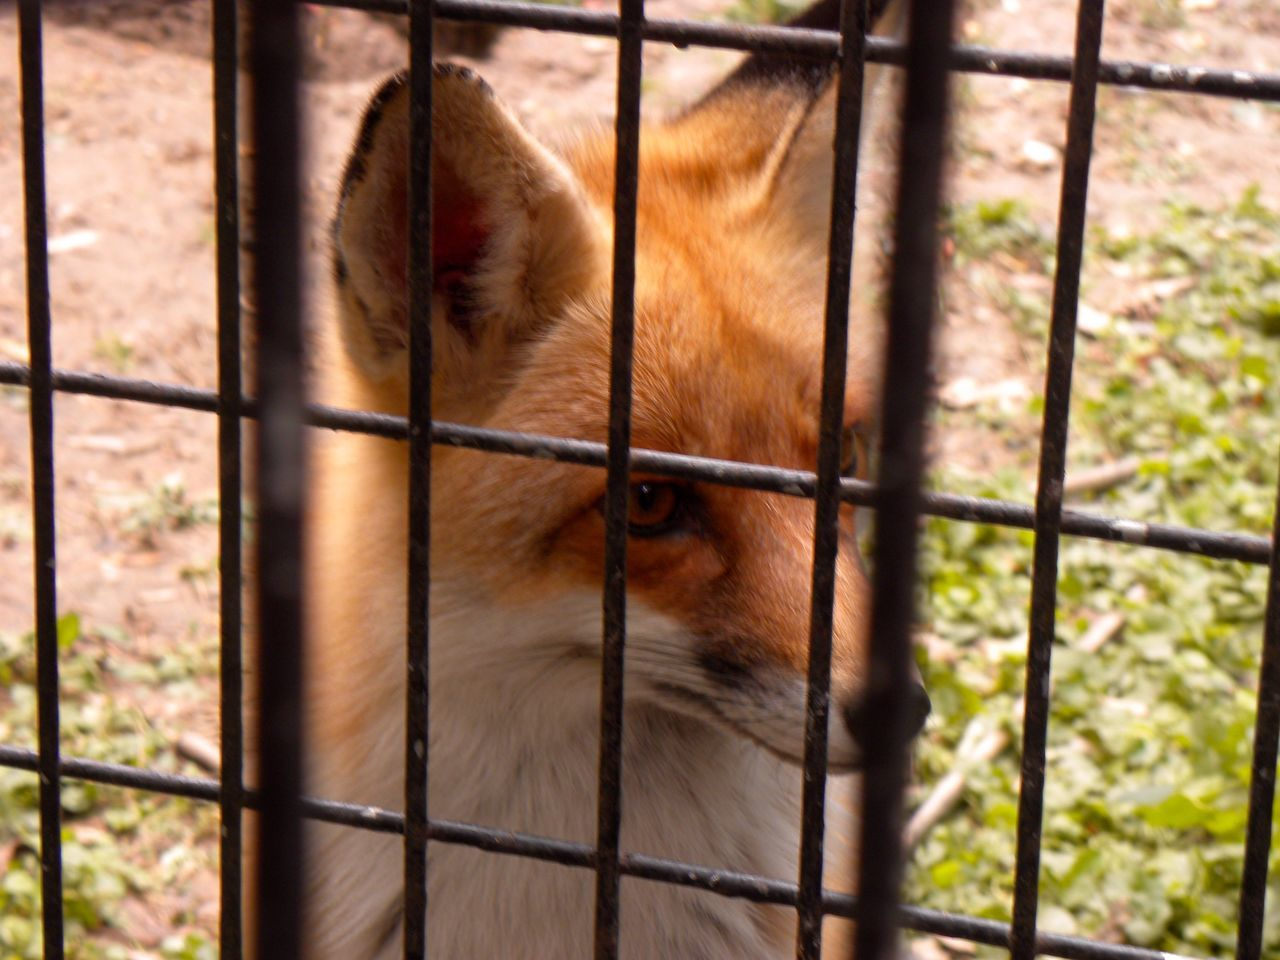 Animal Themes Animal Wildlife Animals In Captivity Beijing Beijing China Beijing Scenes BEIJING 北京 Beijing, China BEIJING北京CHINA中国BEAUTY Cage China China Photos Close-up Day Focus On Foreground Mammal Metal Metal Grate No People One Animal Pets Prison Security Bar Trapped Zoo